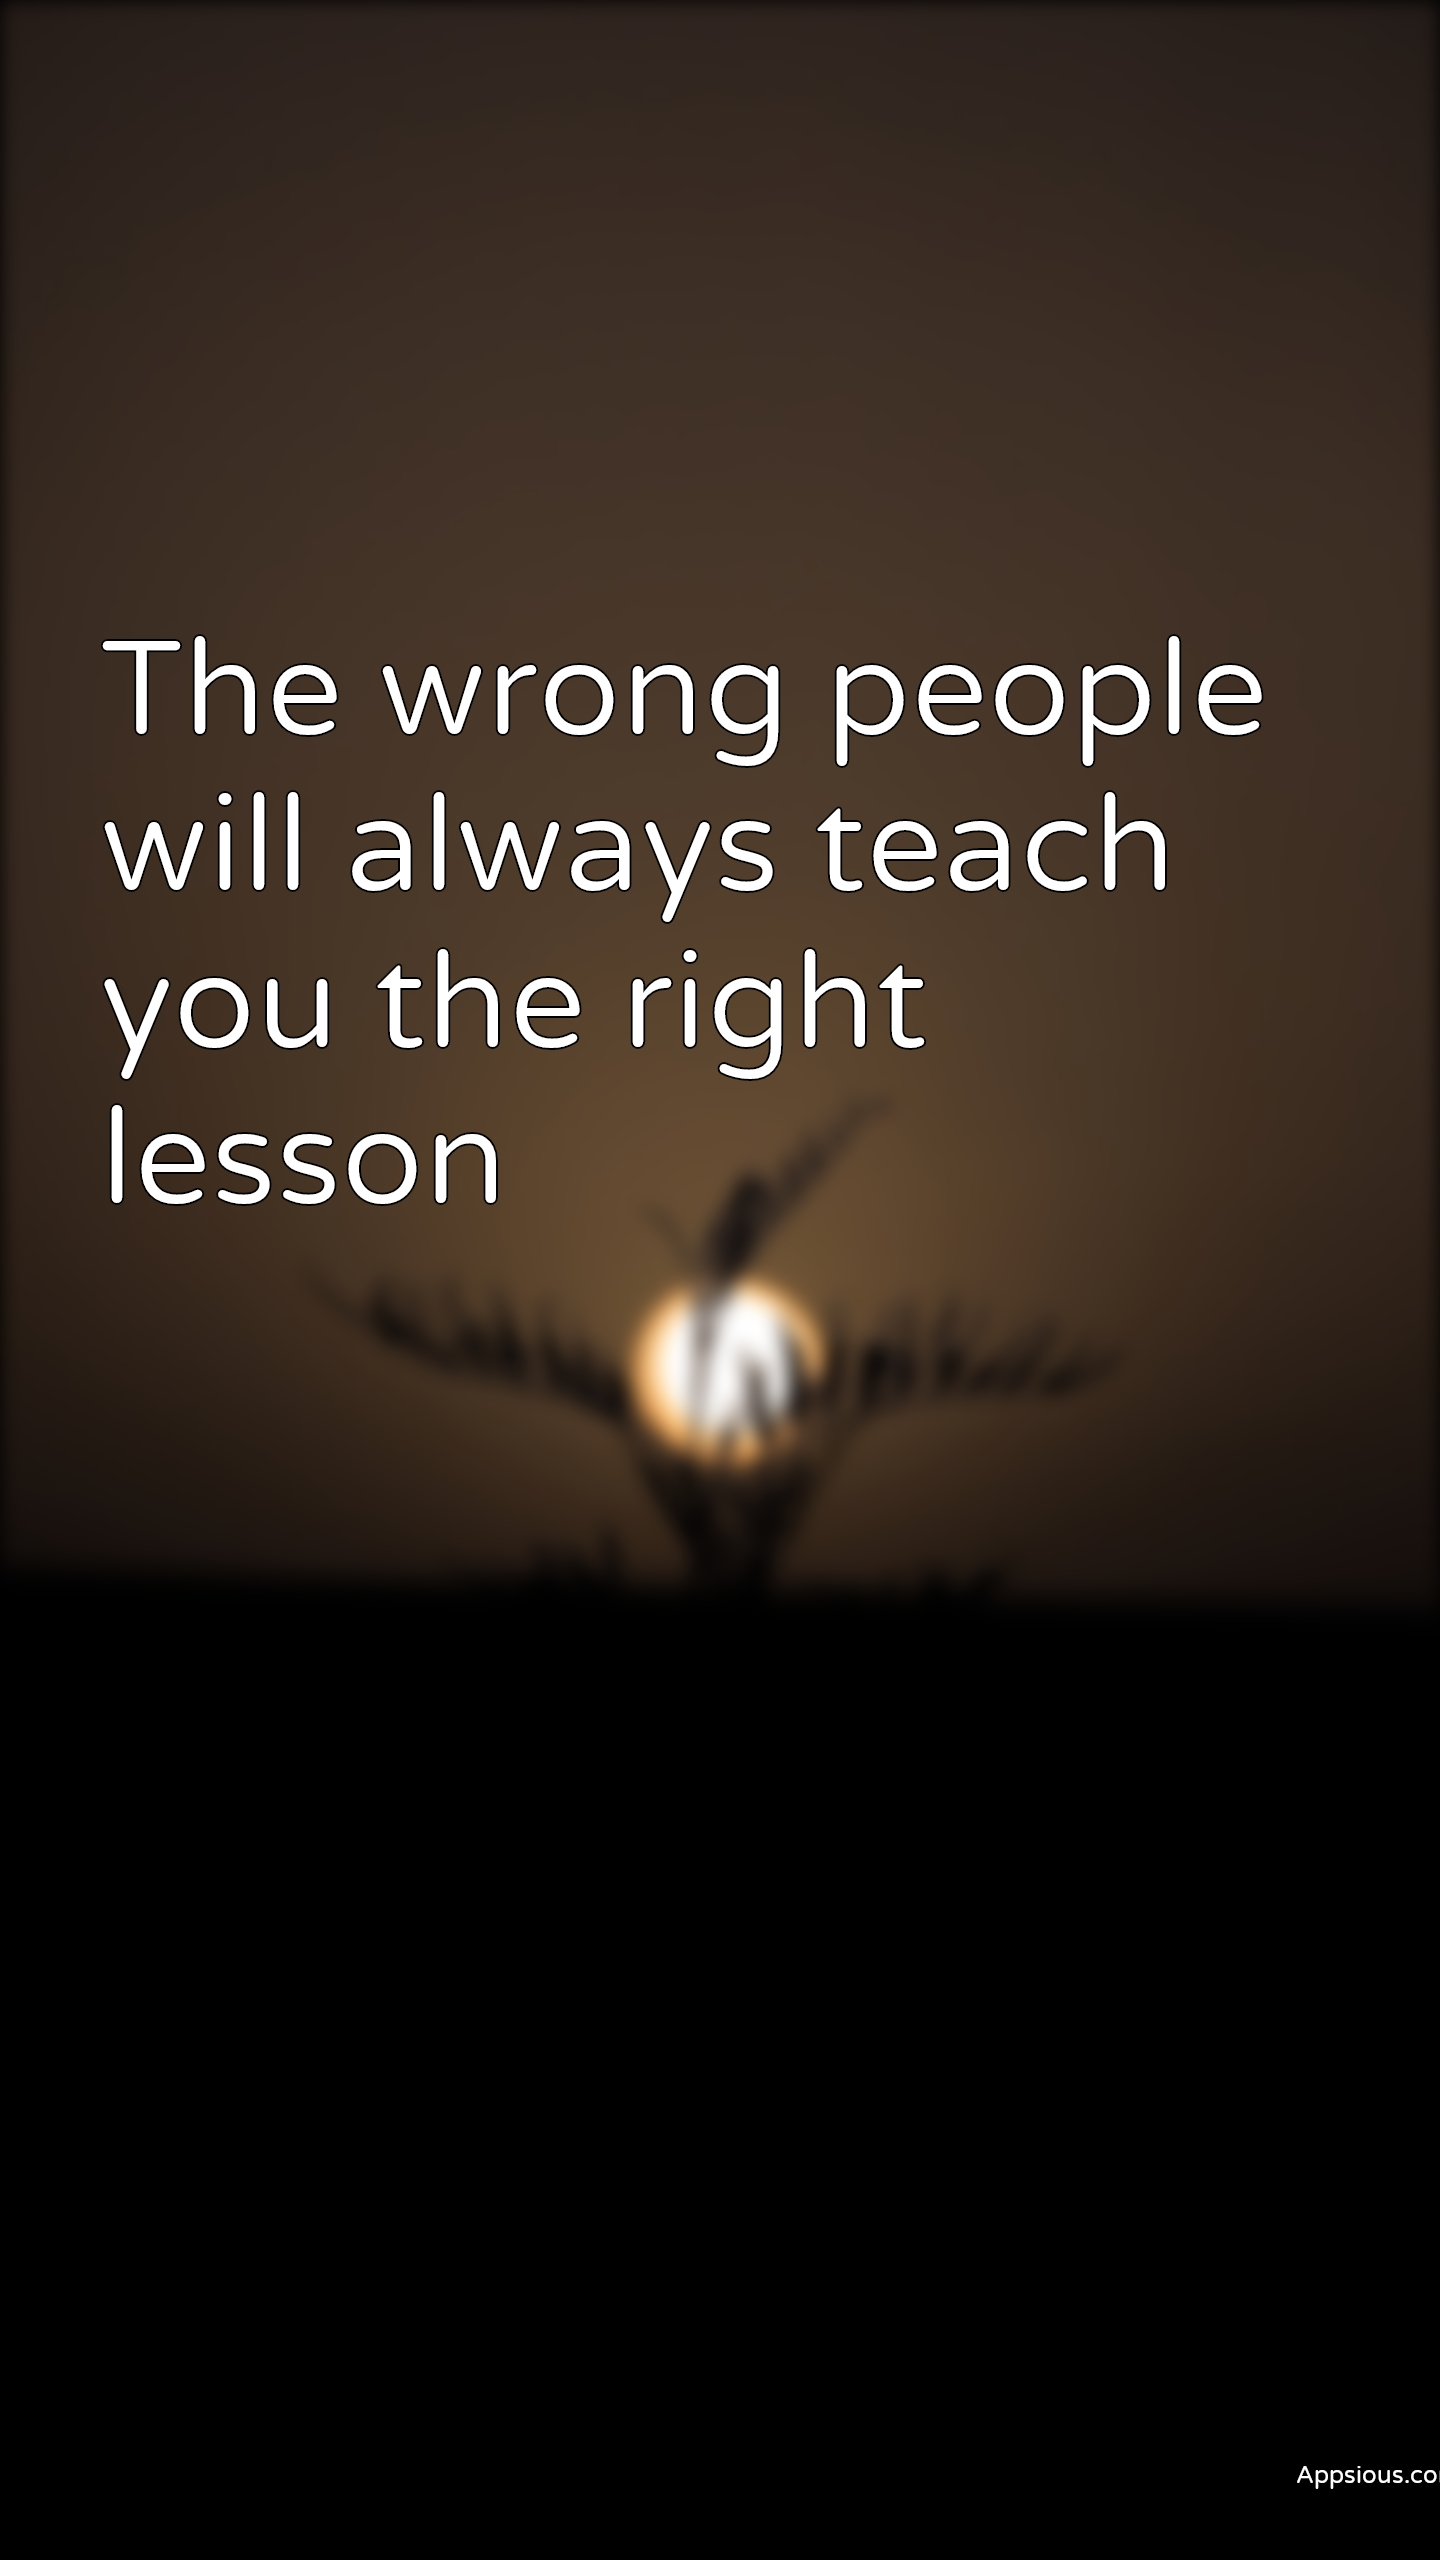 The wrong people will always teach you the right lesson